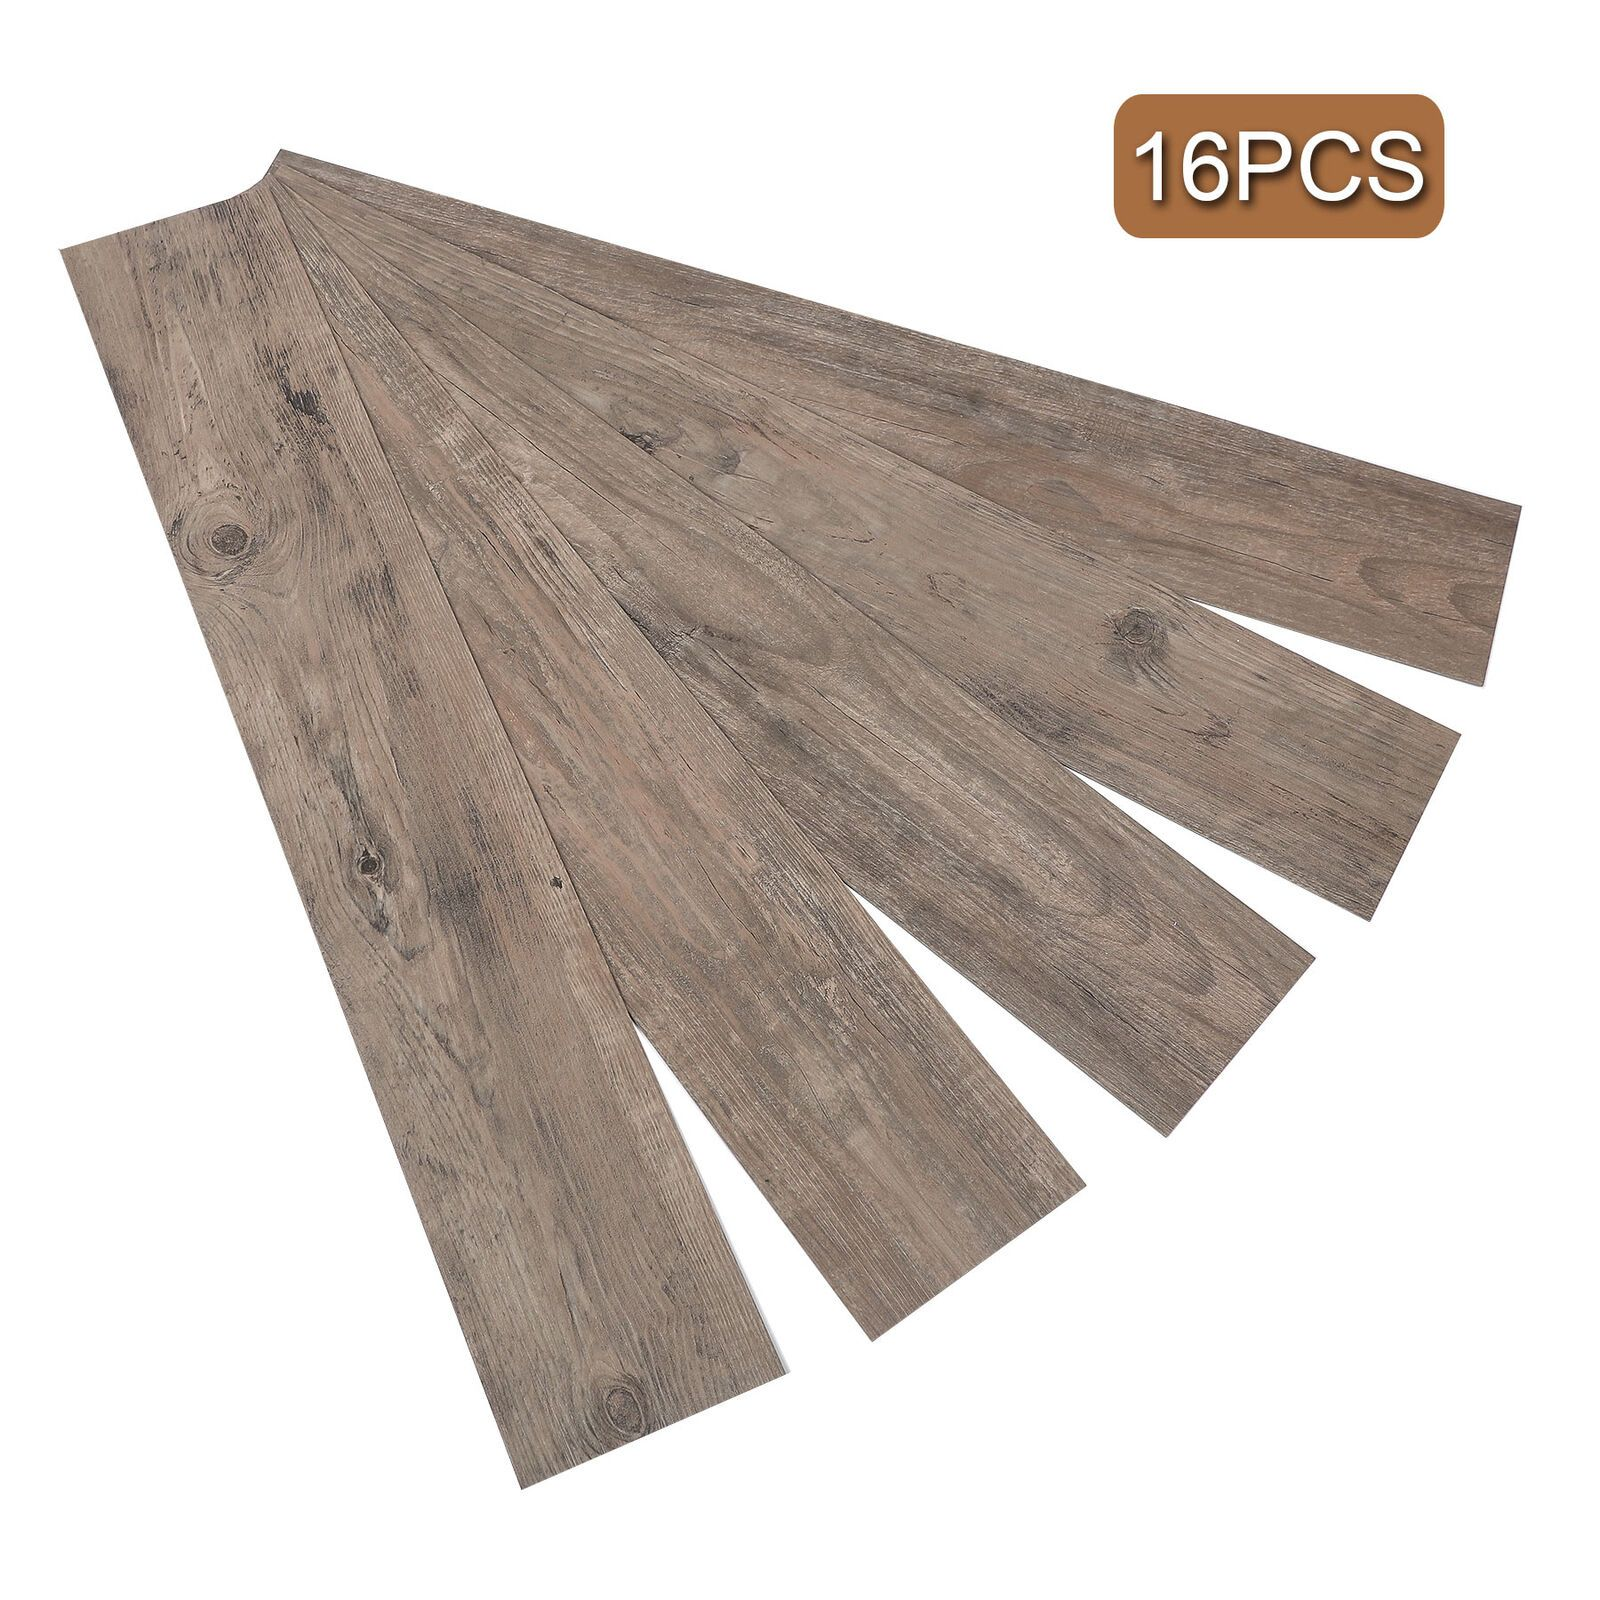 16 Pcs Adhesive Floor Tiles Vinyl Floor Planks 2 0mm Thick 24 Square Feet Vinyl Flooring Ideas Of Vinyl Flooring Vinylflooring With Images Adhesive Floor Tiles